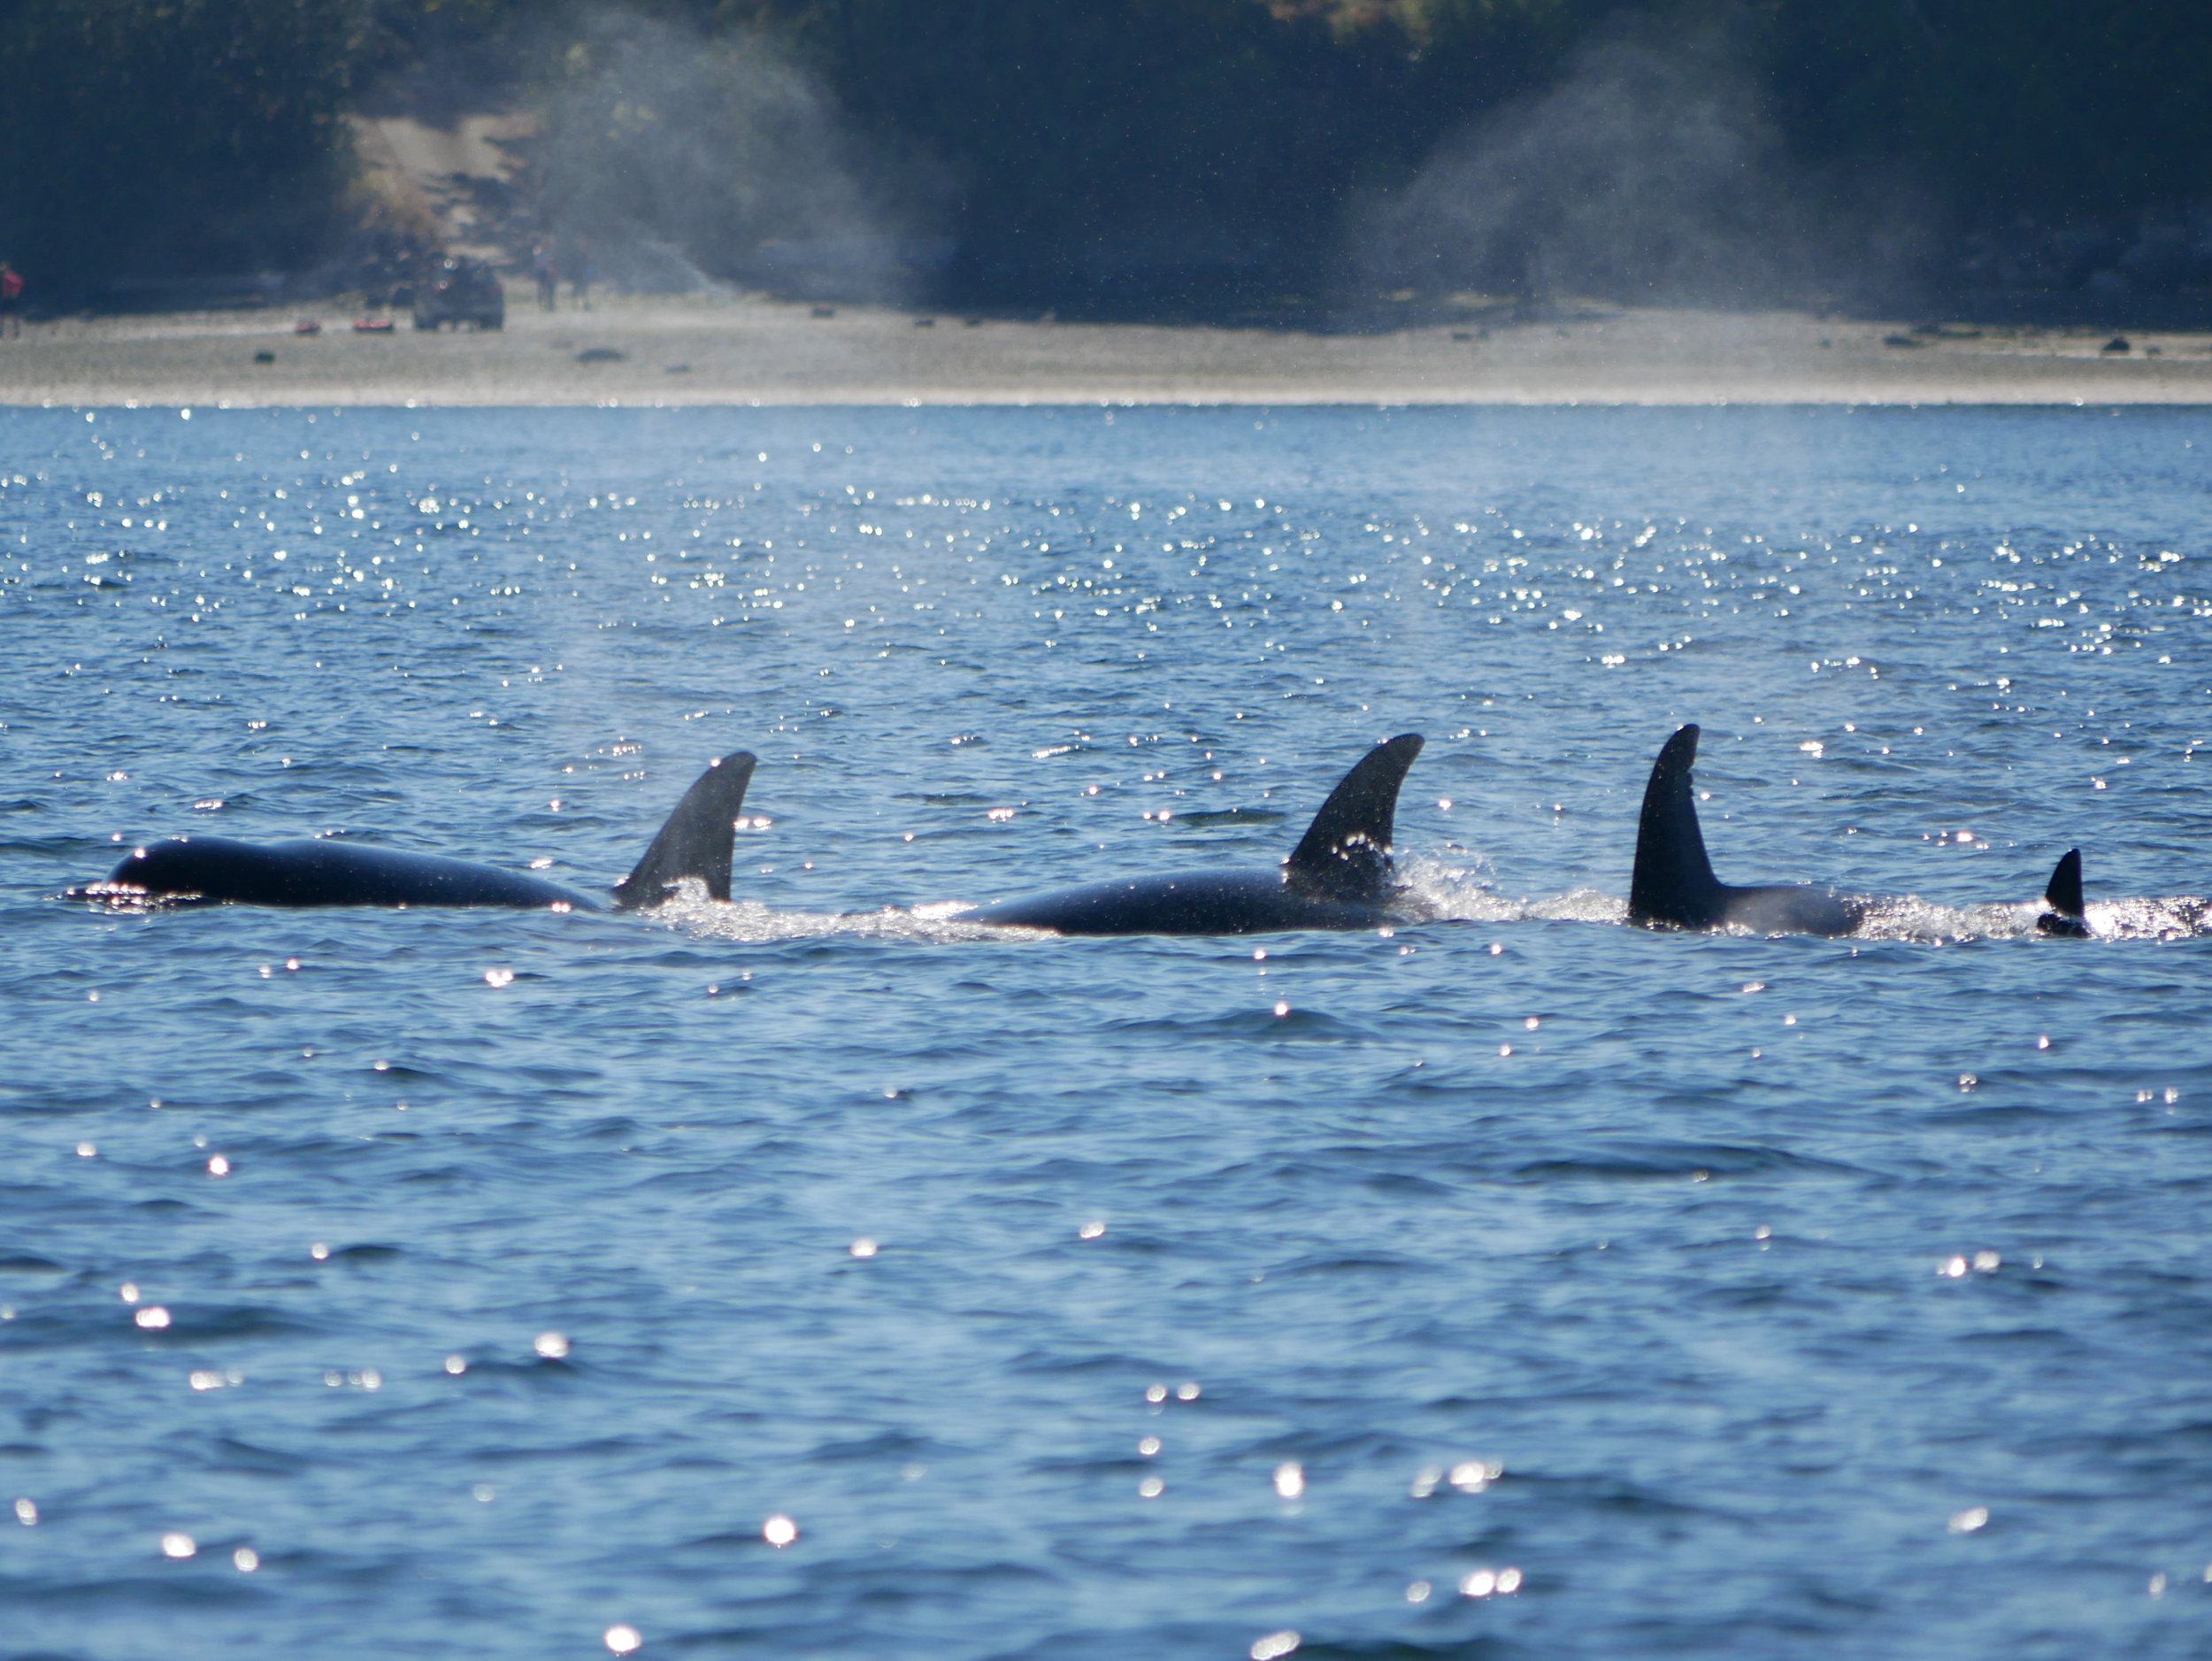 A happy family surfacing together! Photo by Val Watson.